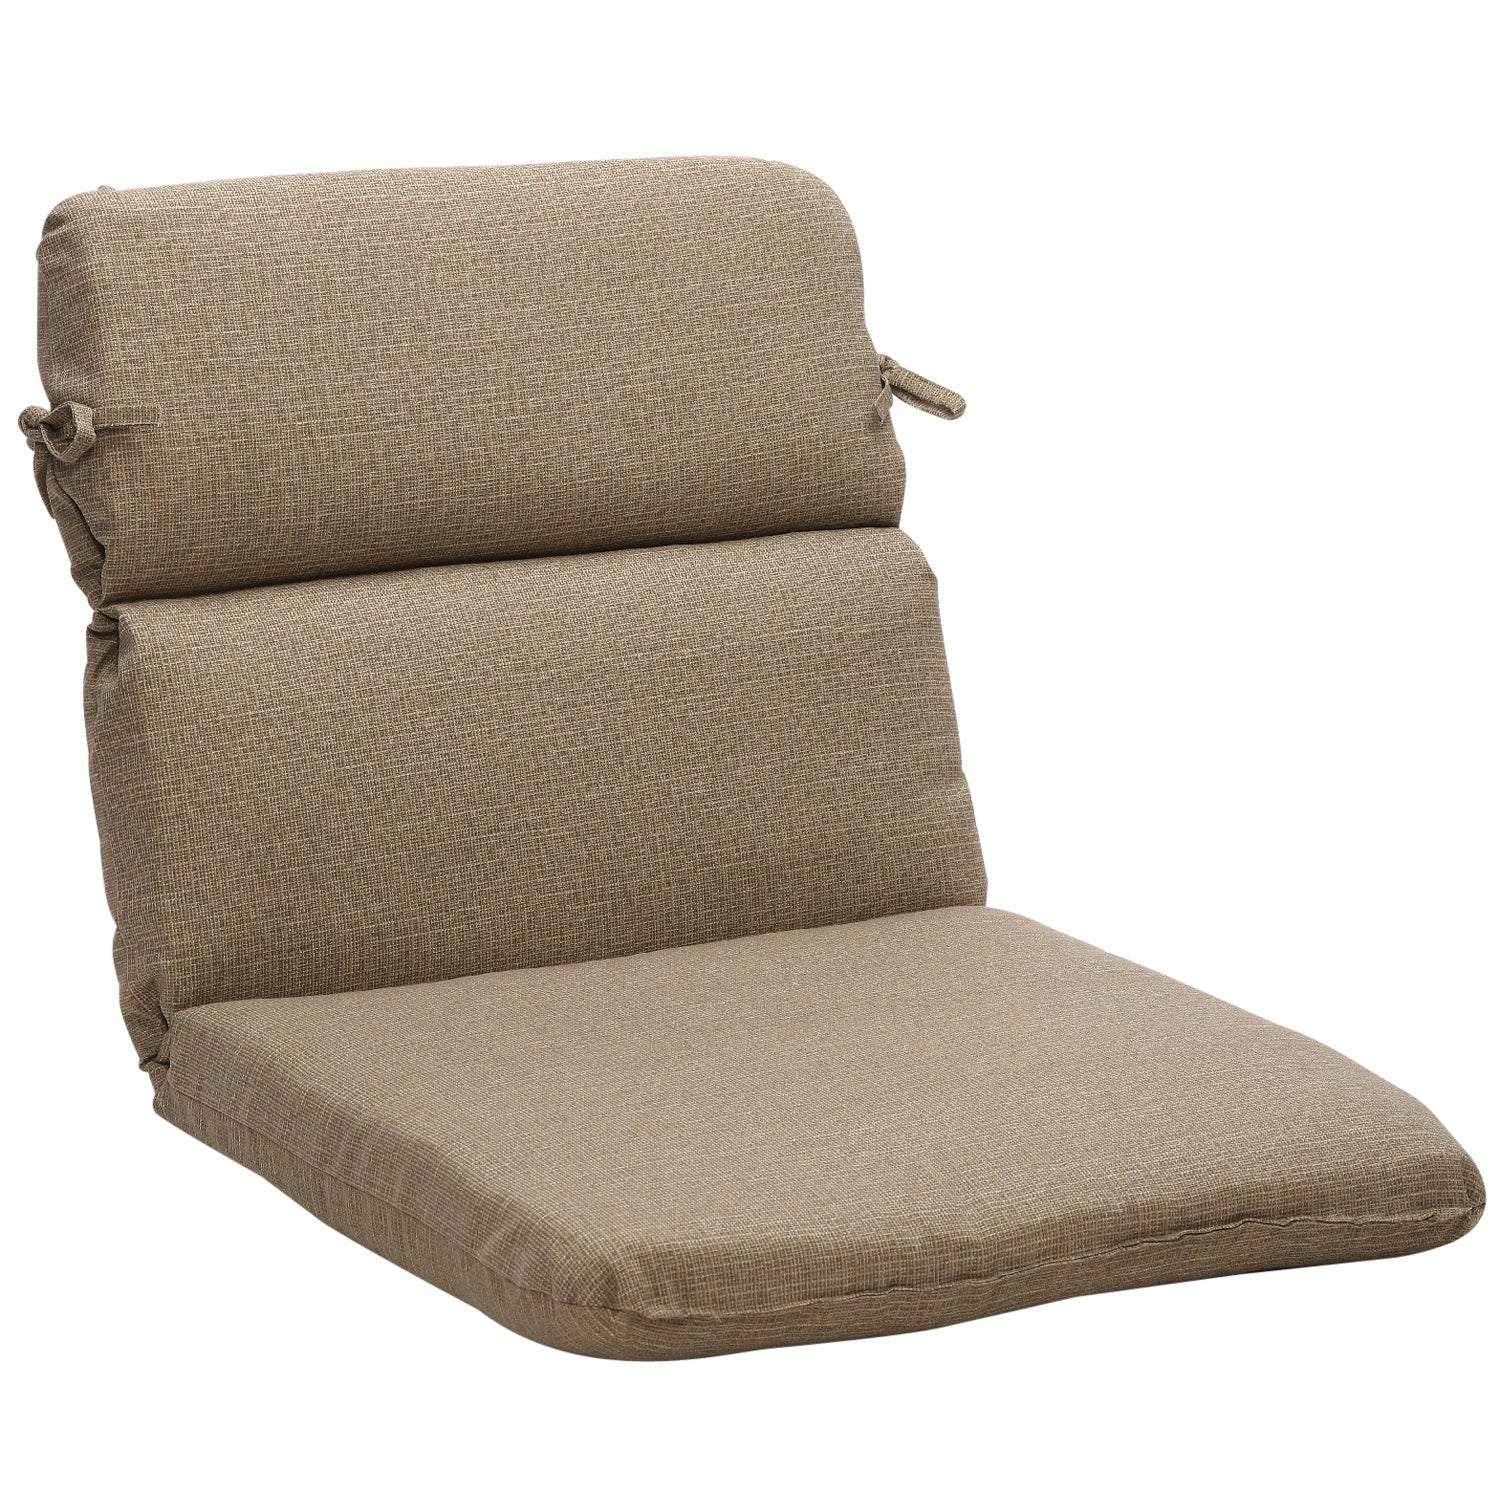 ... Solid Taupe Textured Outdoor Chair Cushion Patio Furniture Garden Deck